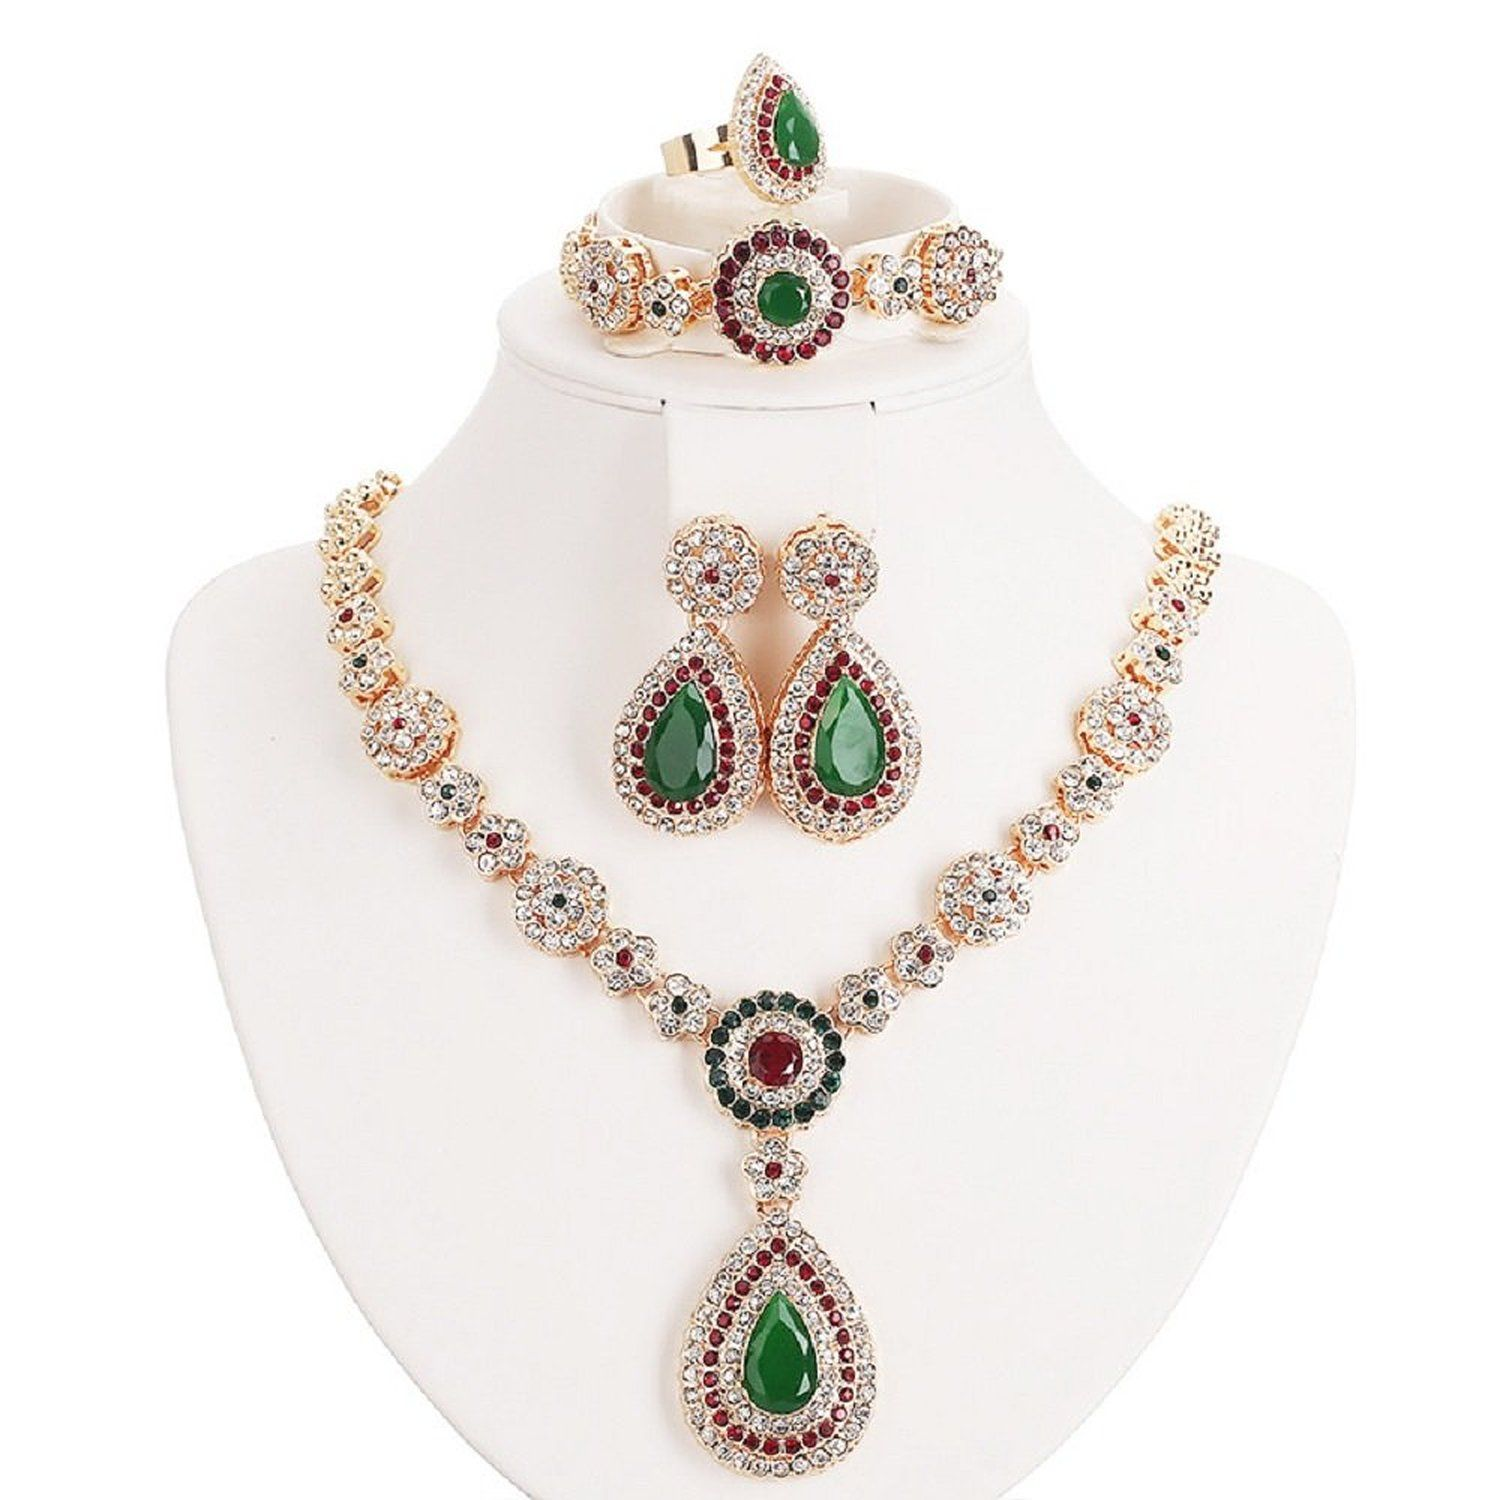 Women gold plated jewelry set red u green beads oval pendant